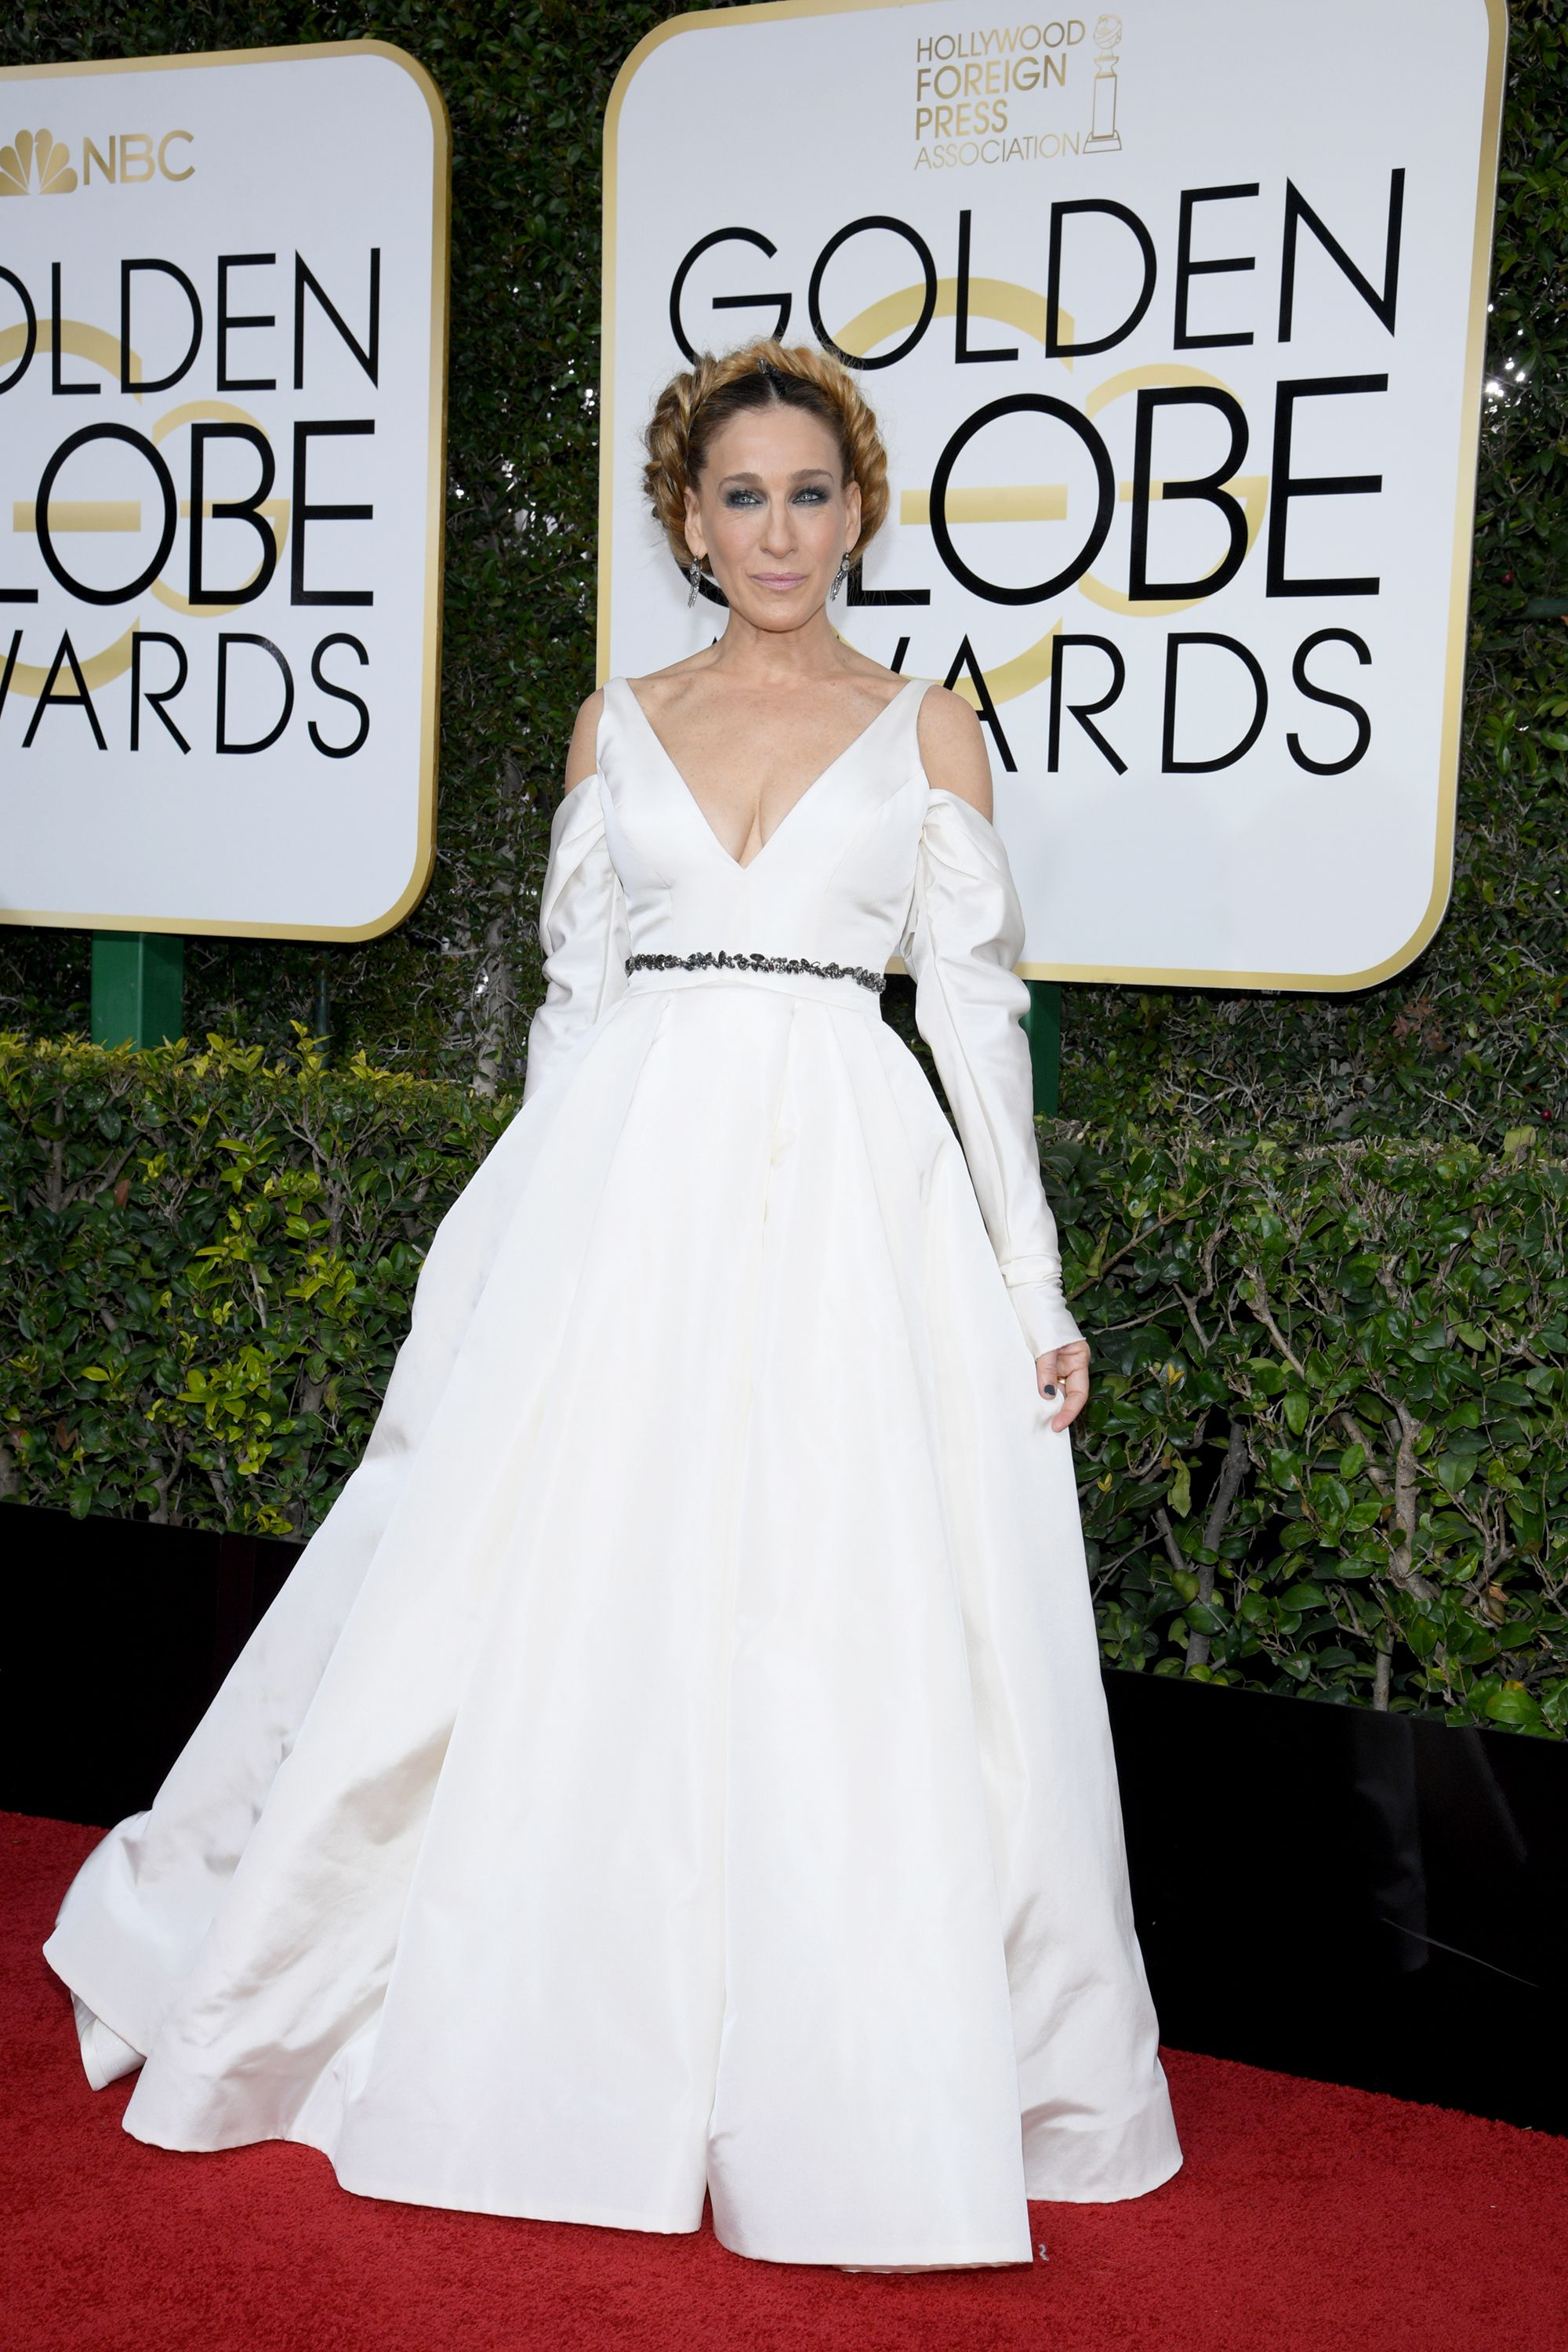 Best Golden Globes Red Carpet Dresses 2017 - Celebrity Pictures From ...